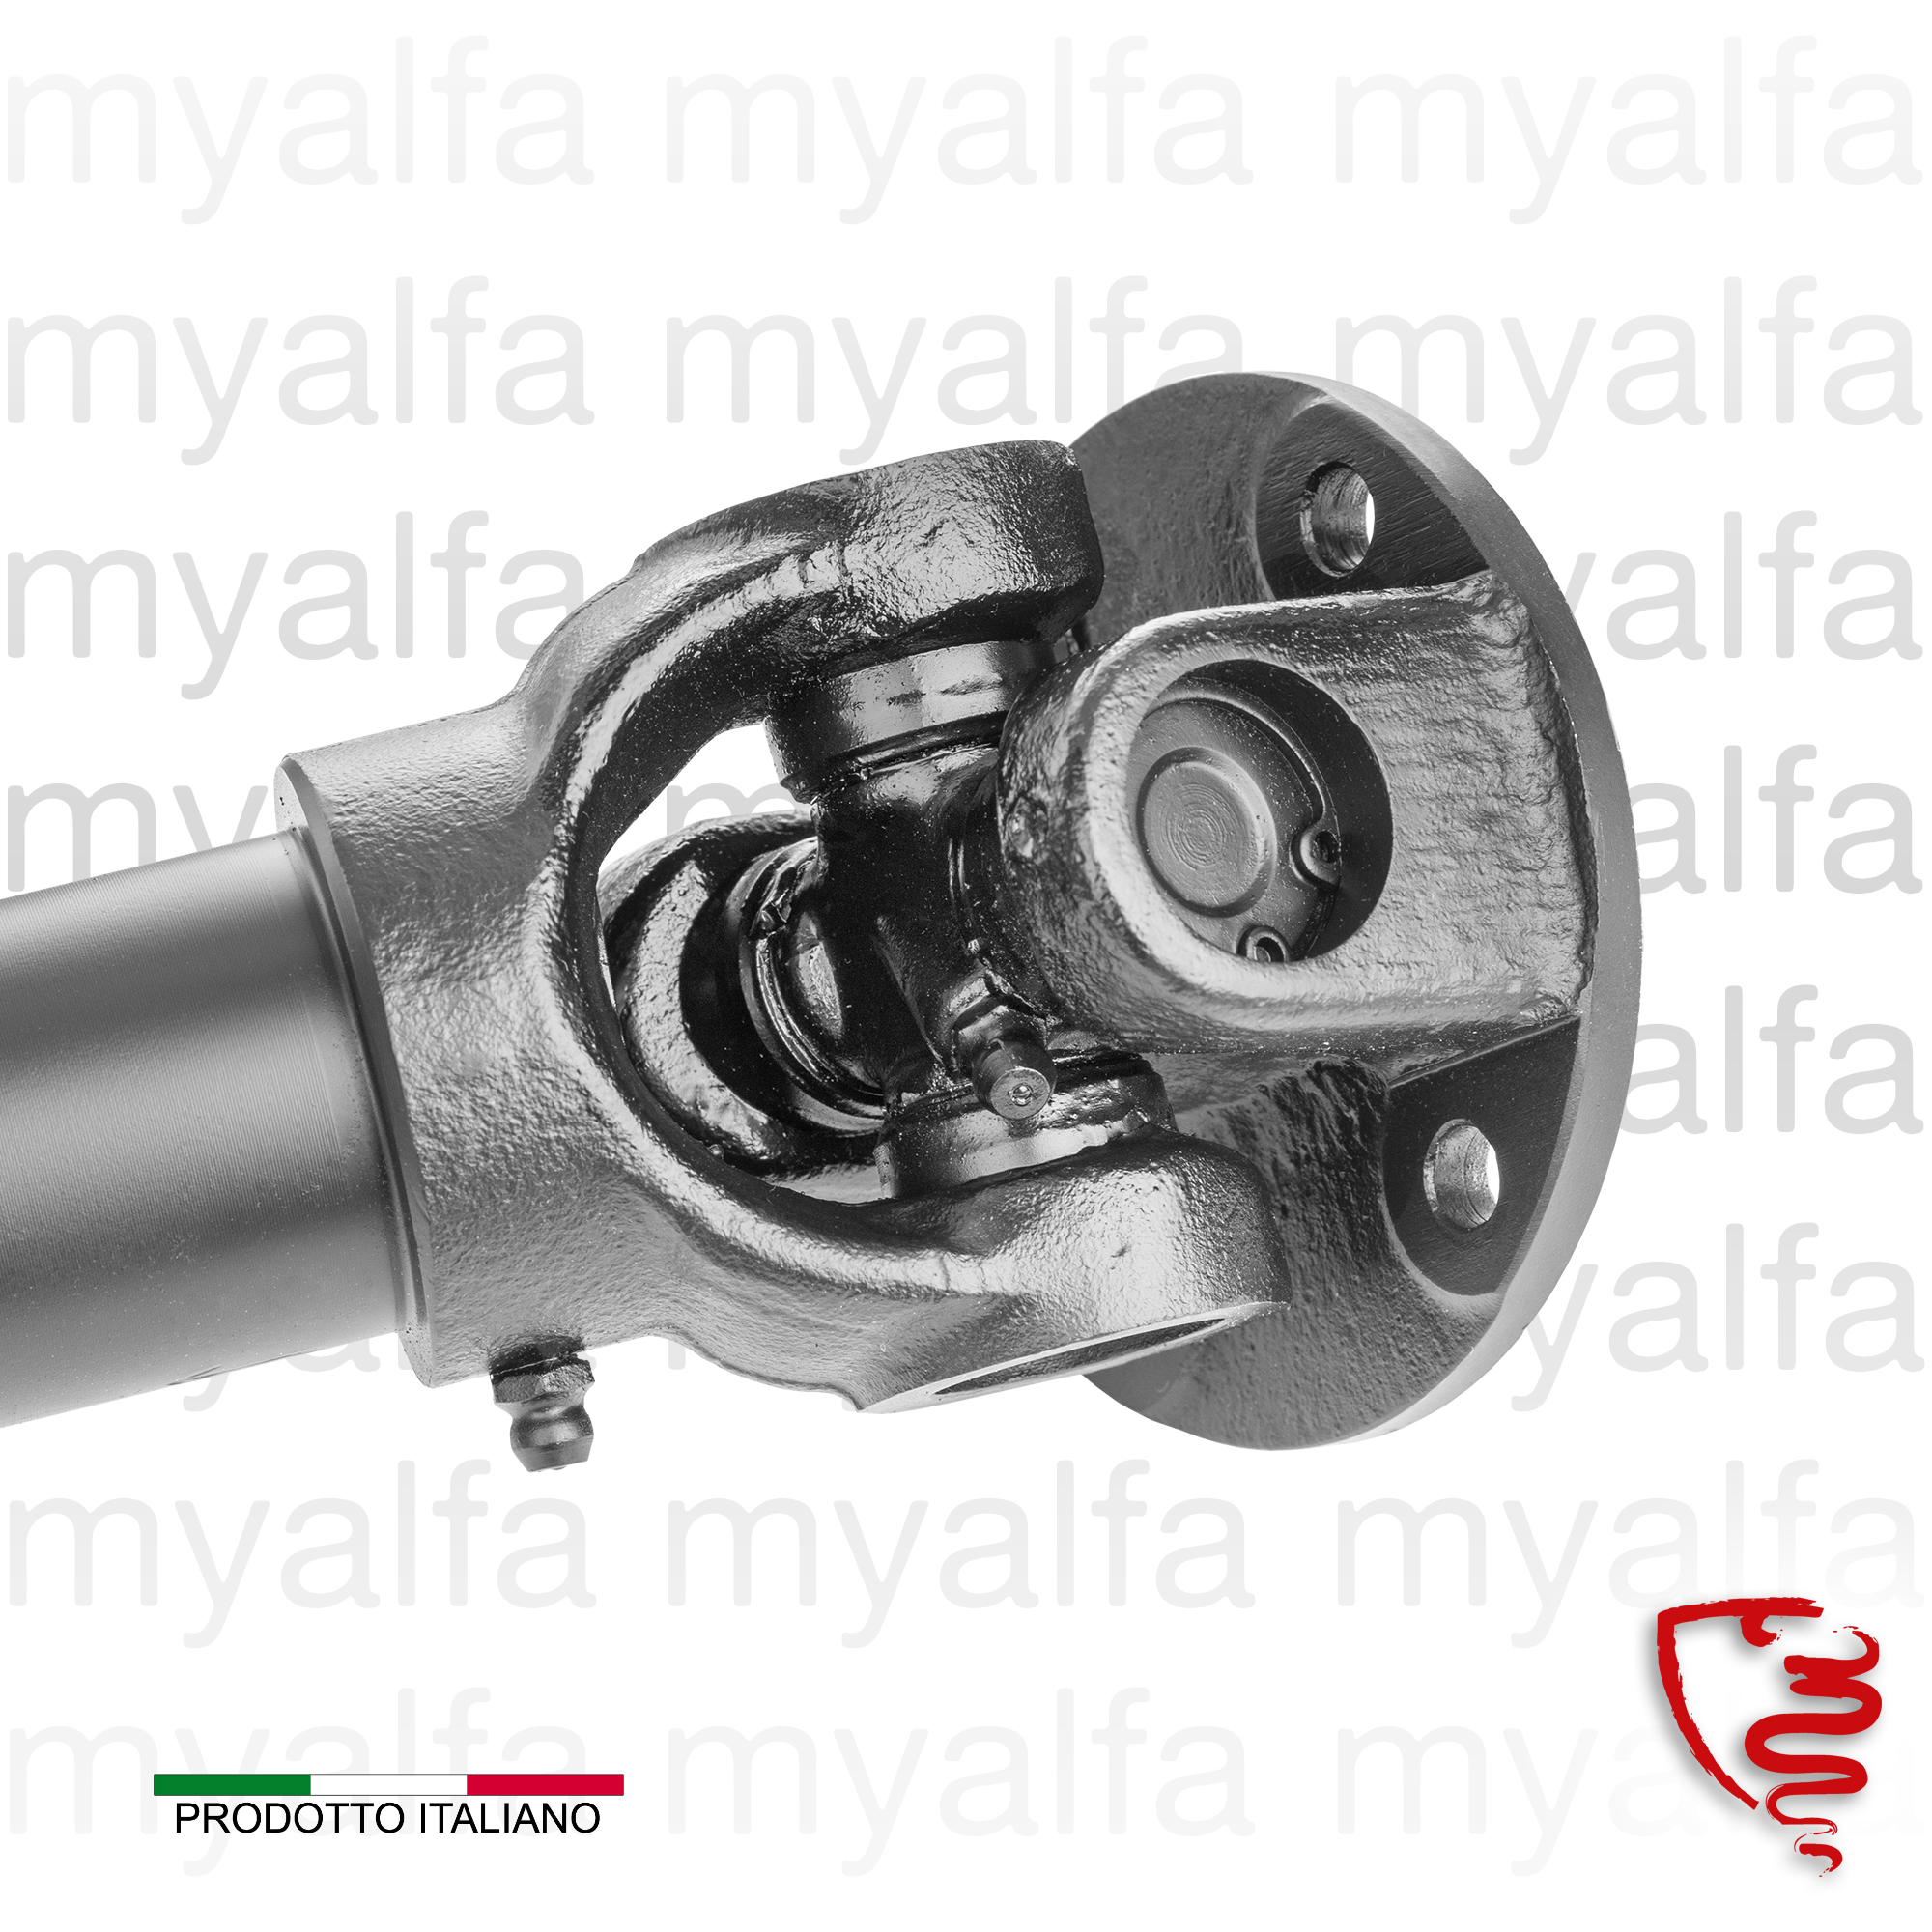 Shaft Spider / Junior Zagato - Section back for 105/115, Coupe, Junior, Spider, Drive train, Propshaft